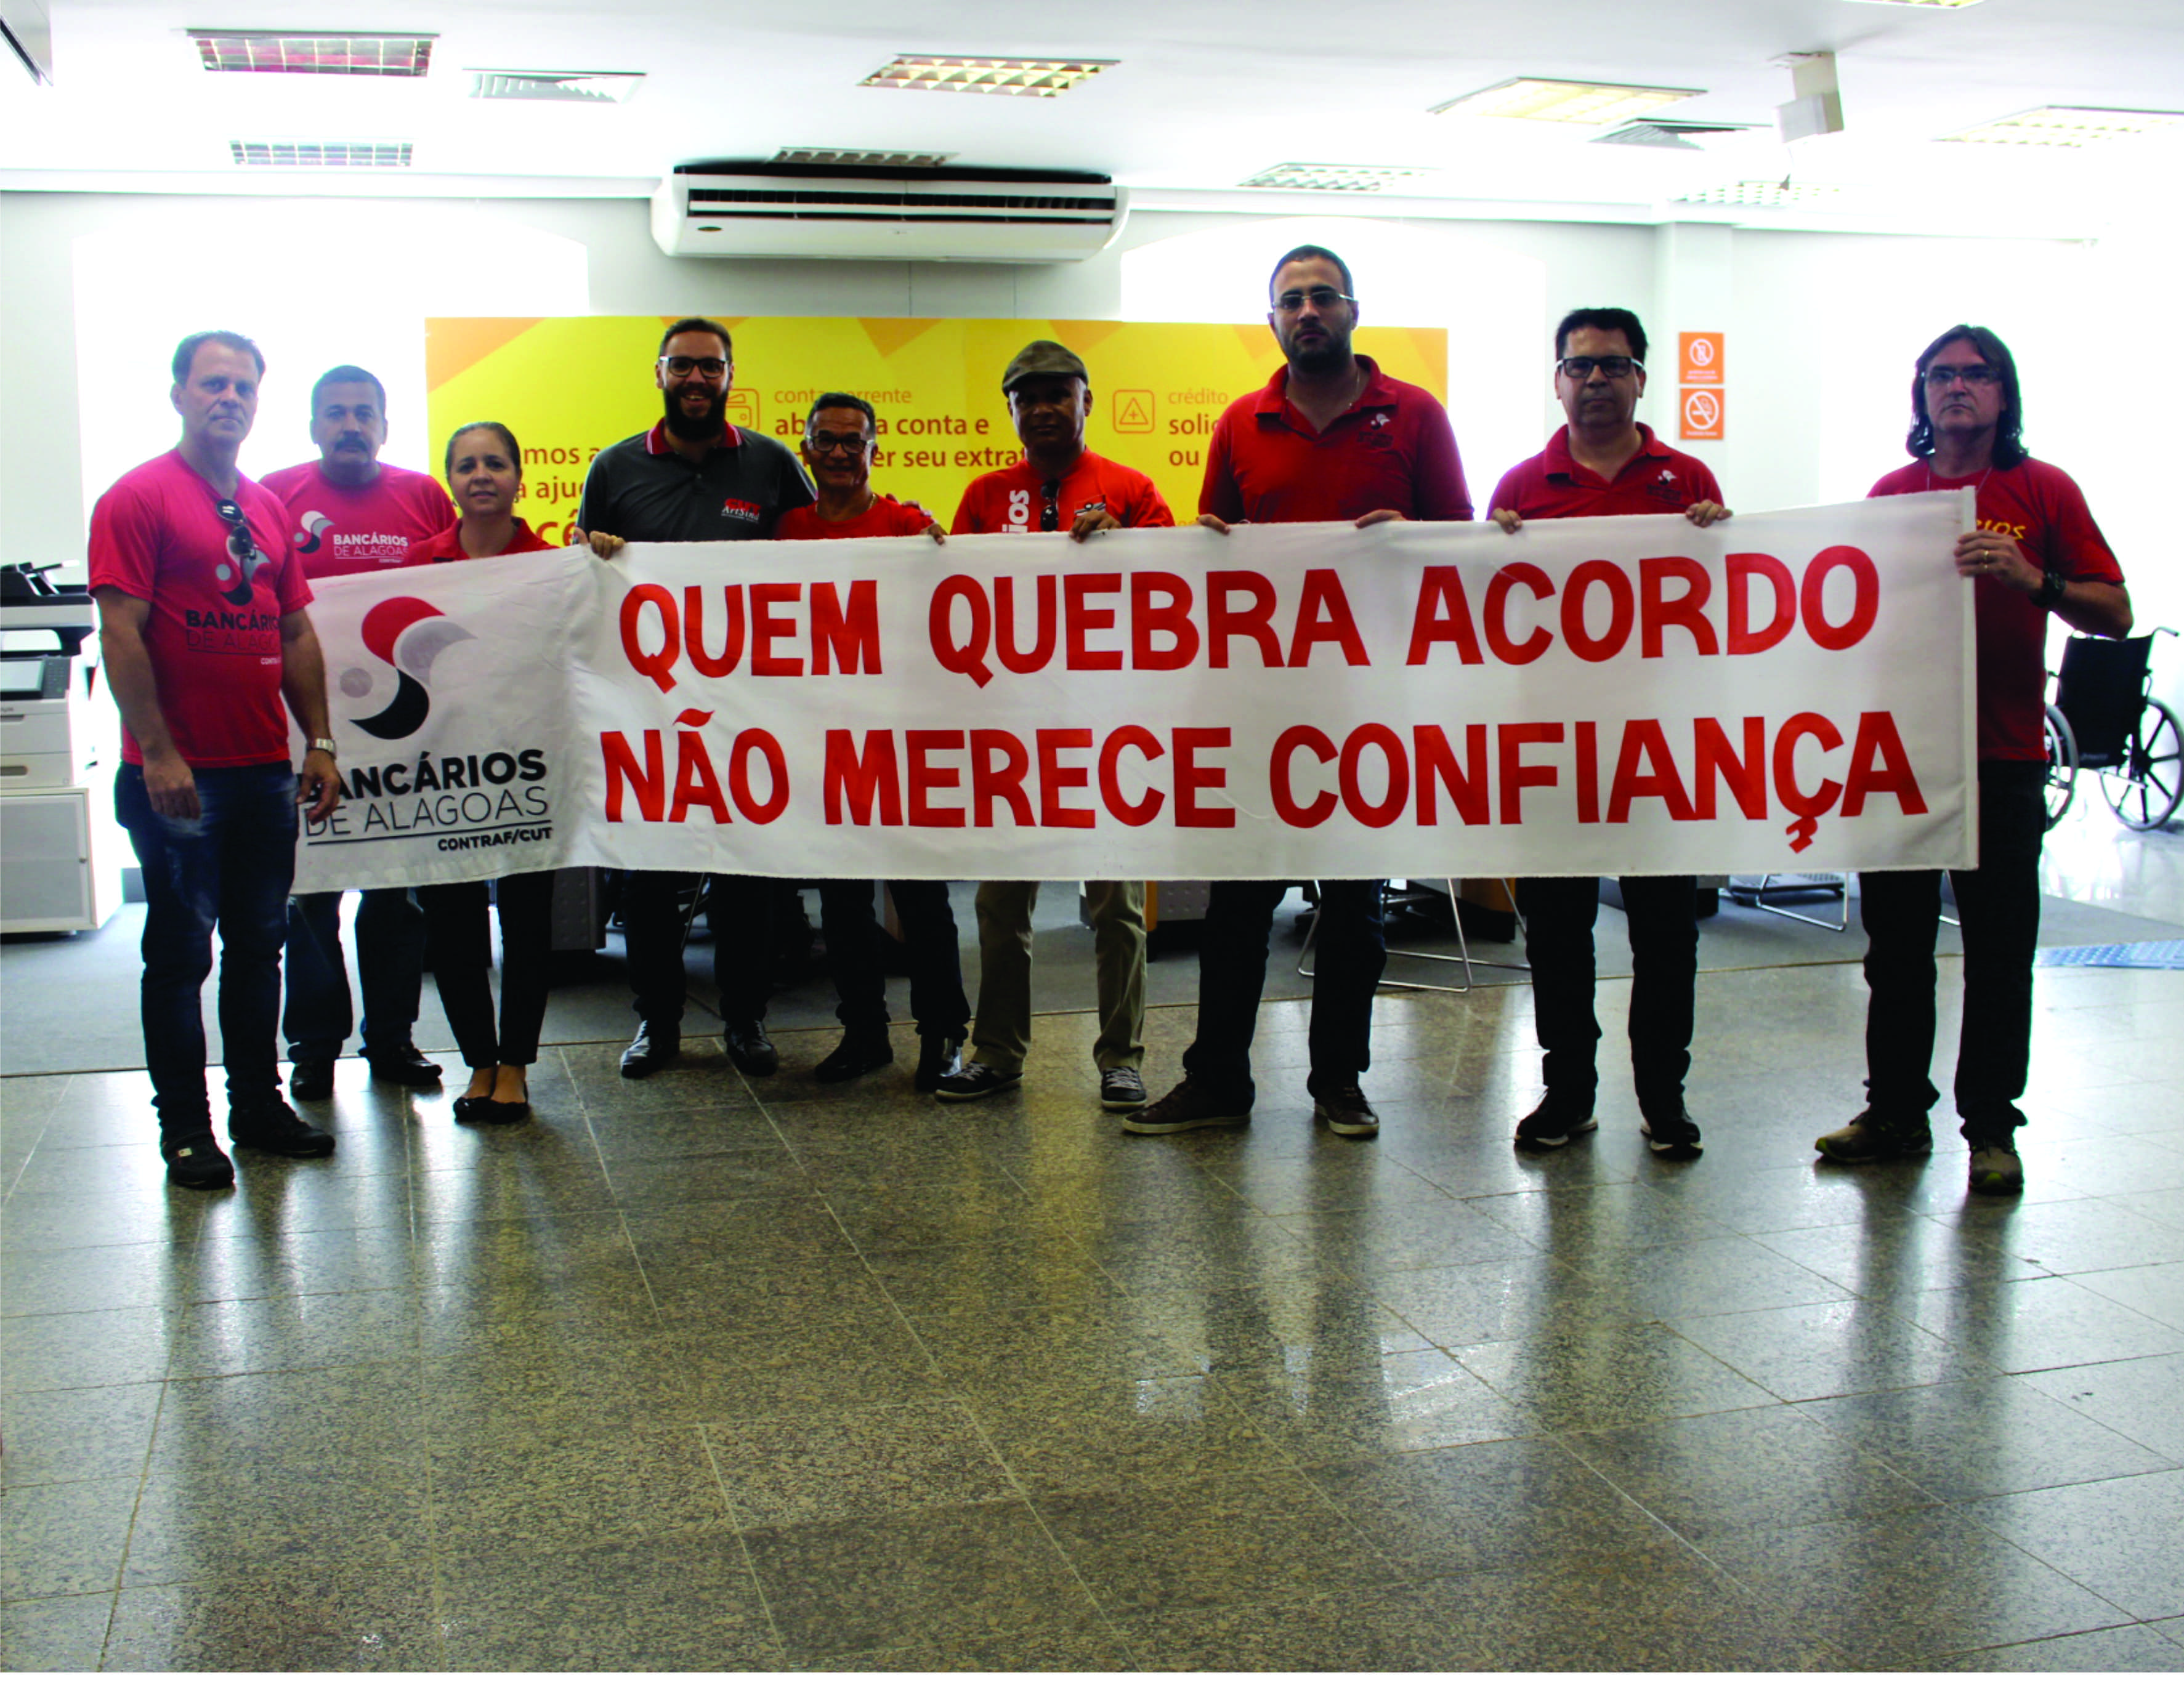 Protesto no interior do Itaú